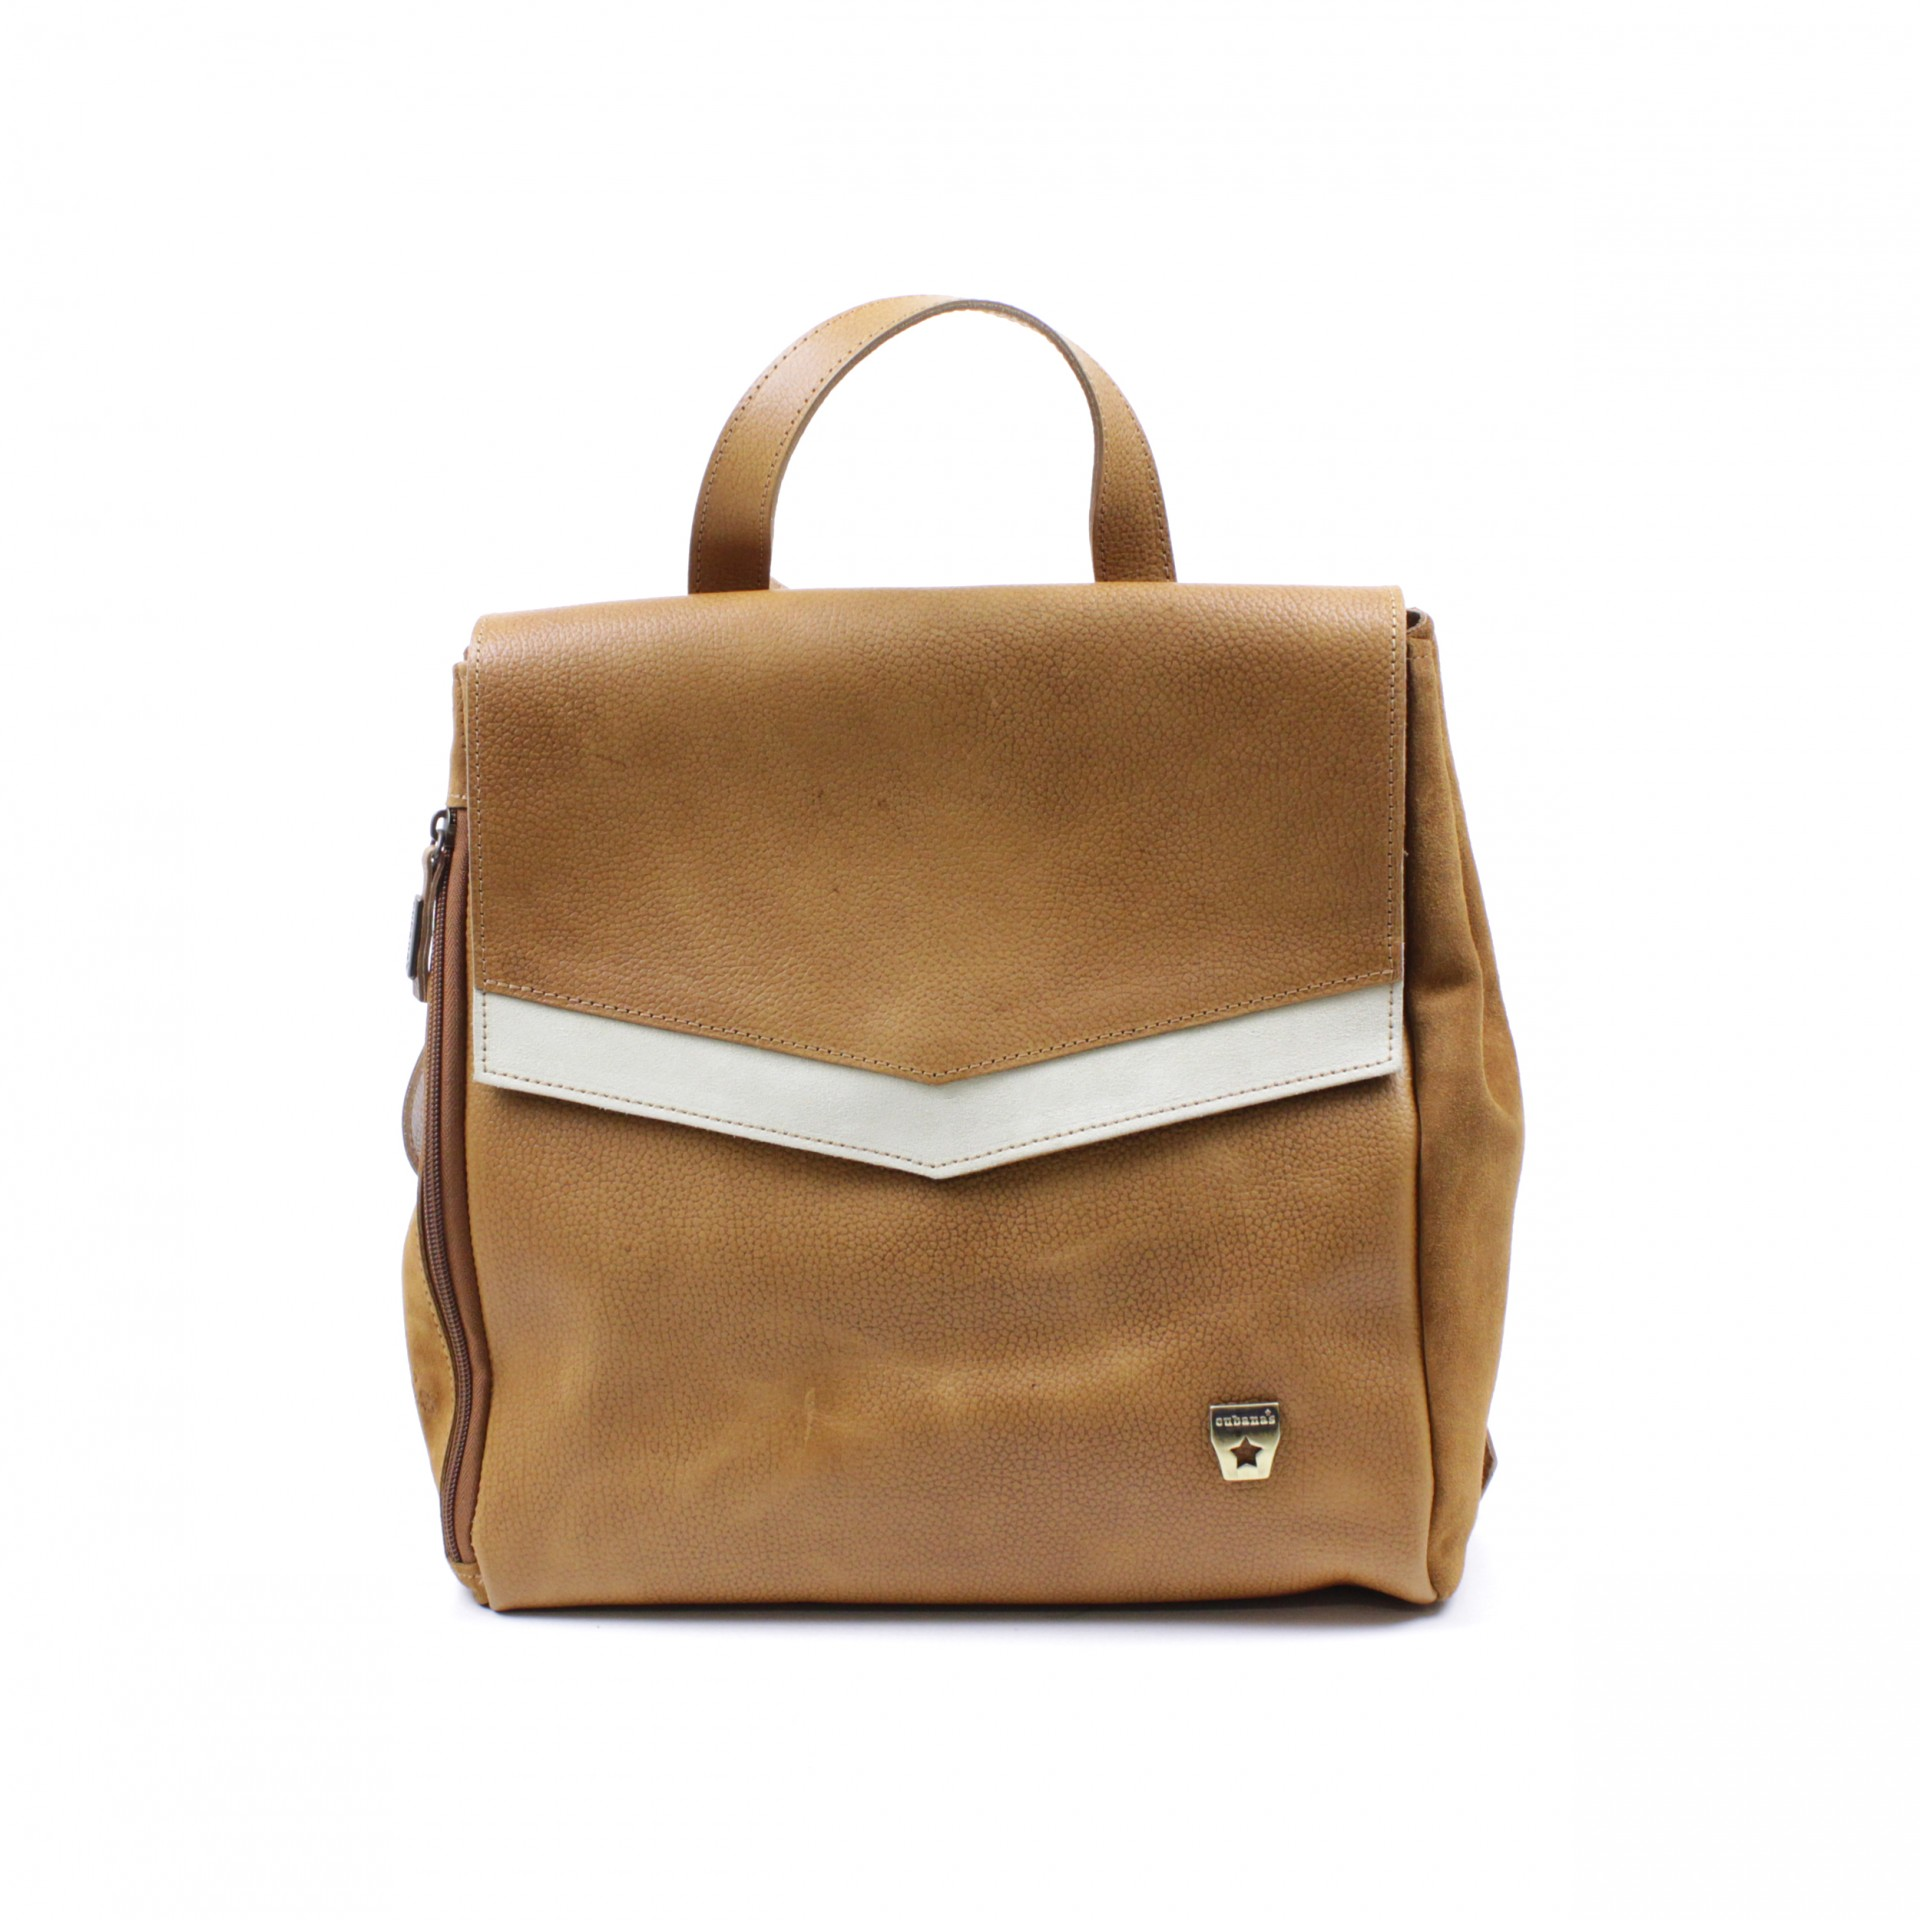 BACKPACK CUBANAS RACHAEL100 LIGHT BROWN